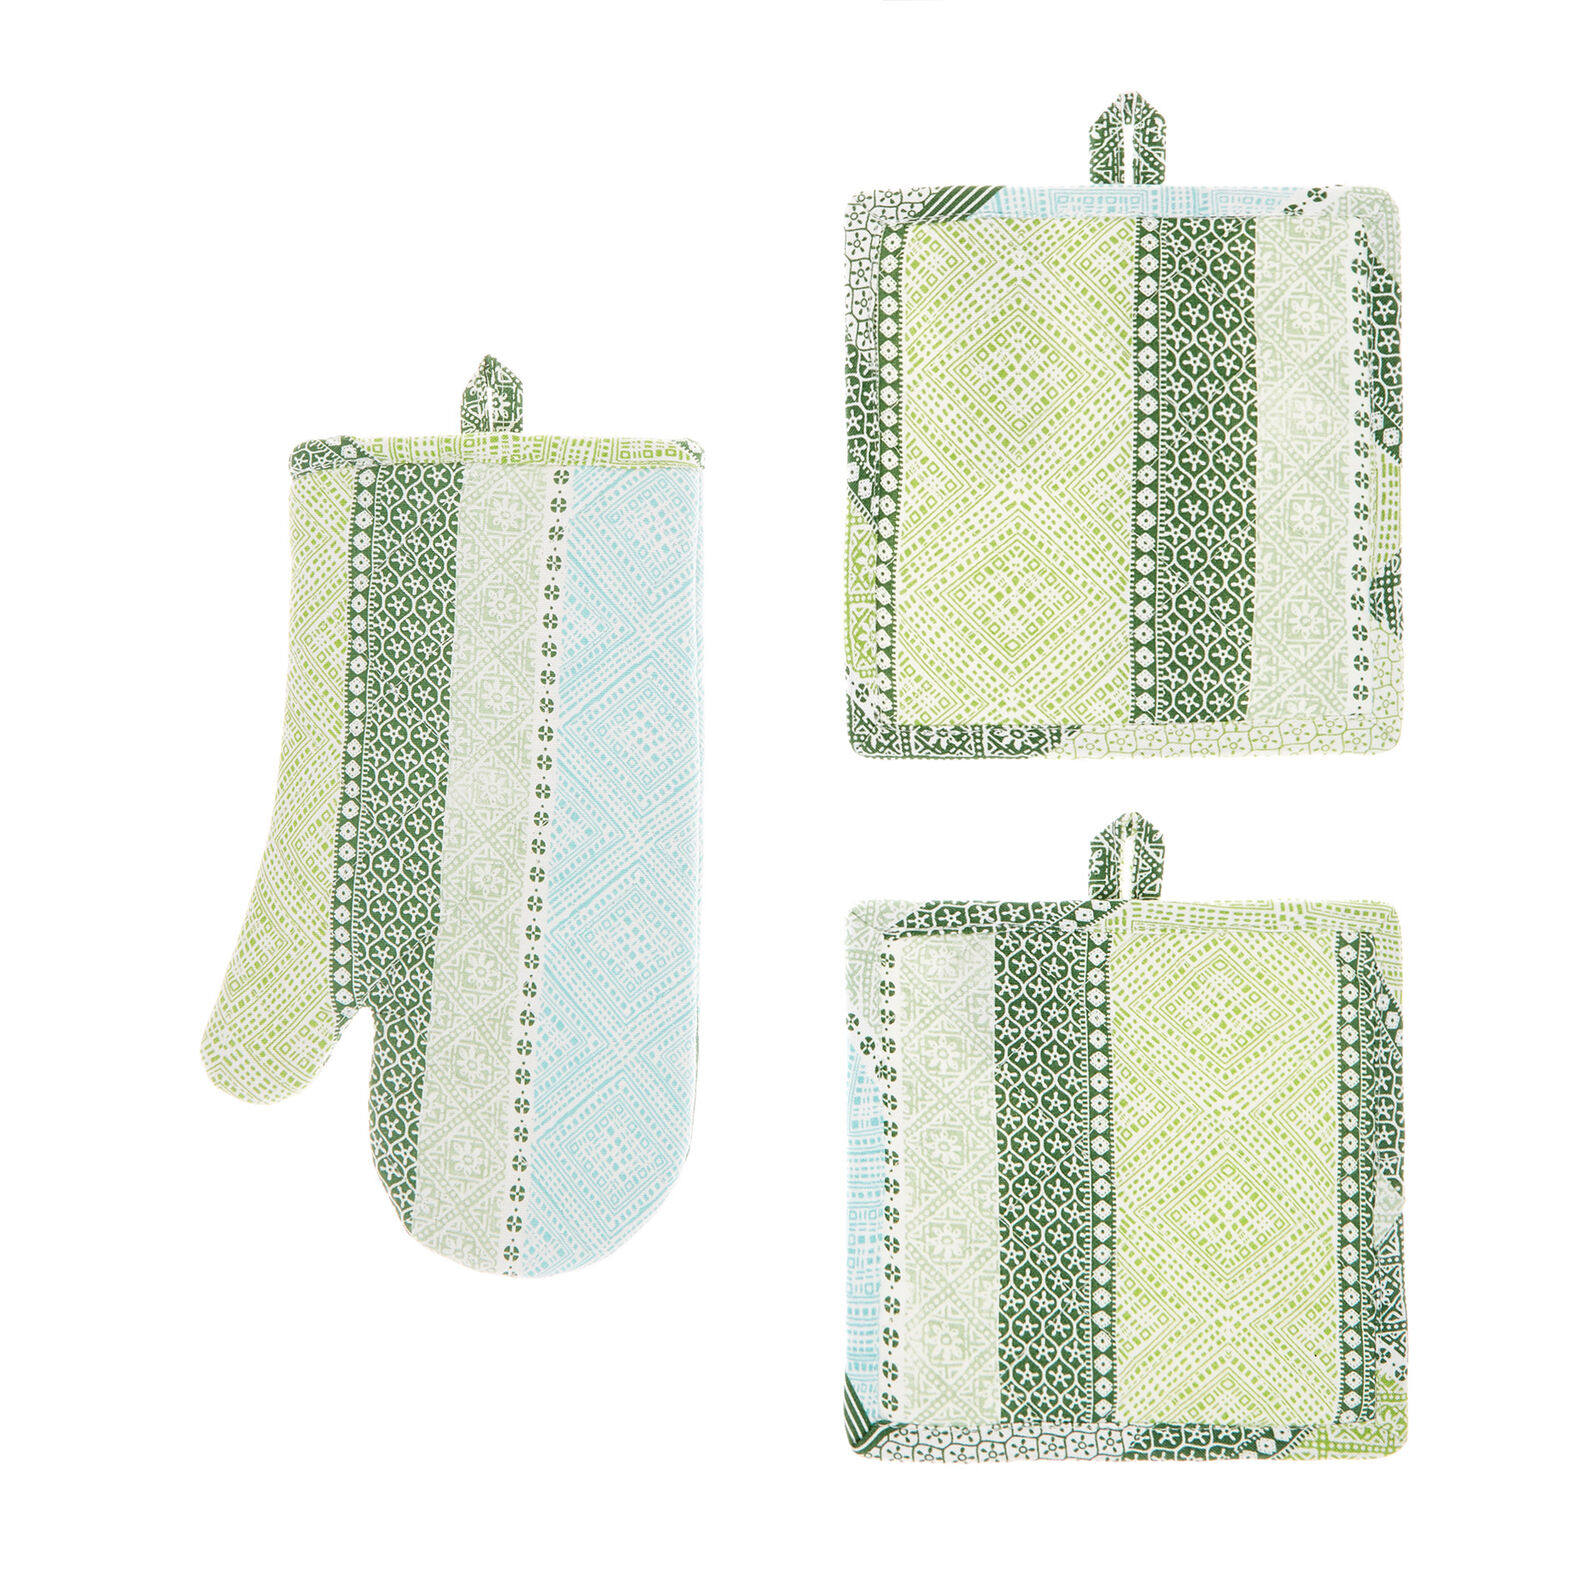 Set of 2 pot holders and an oven mitt in 100% cotton with multi-striped print